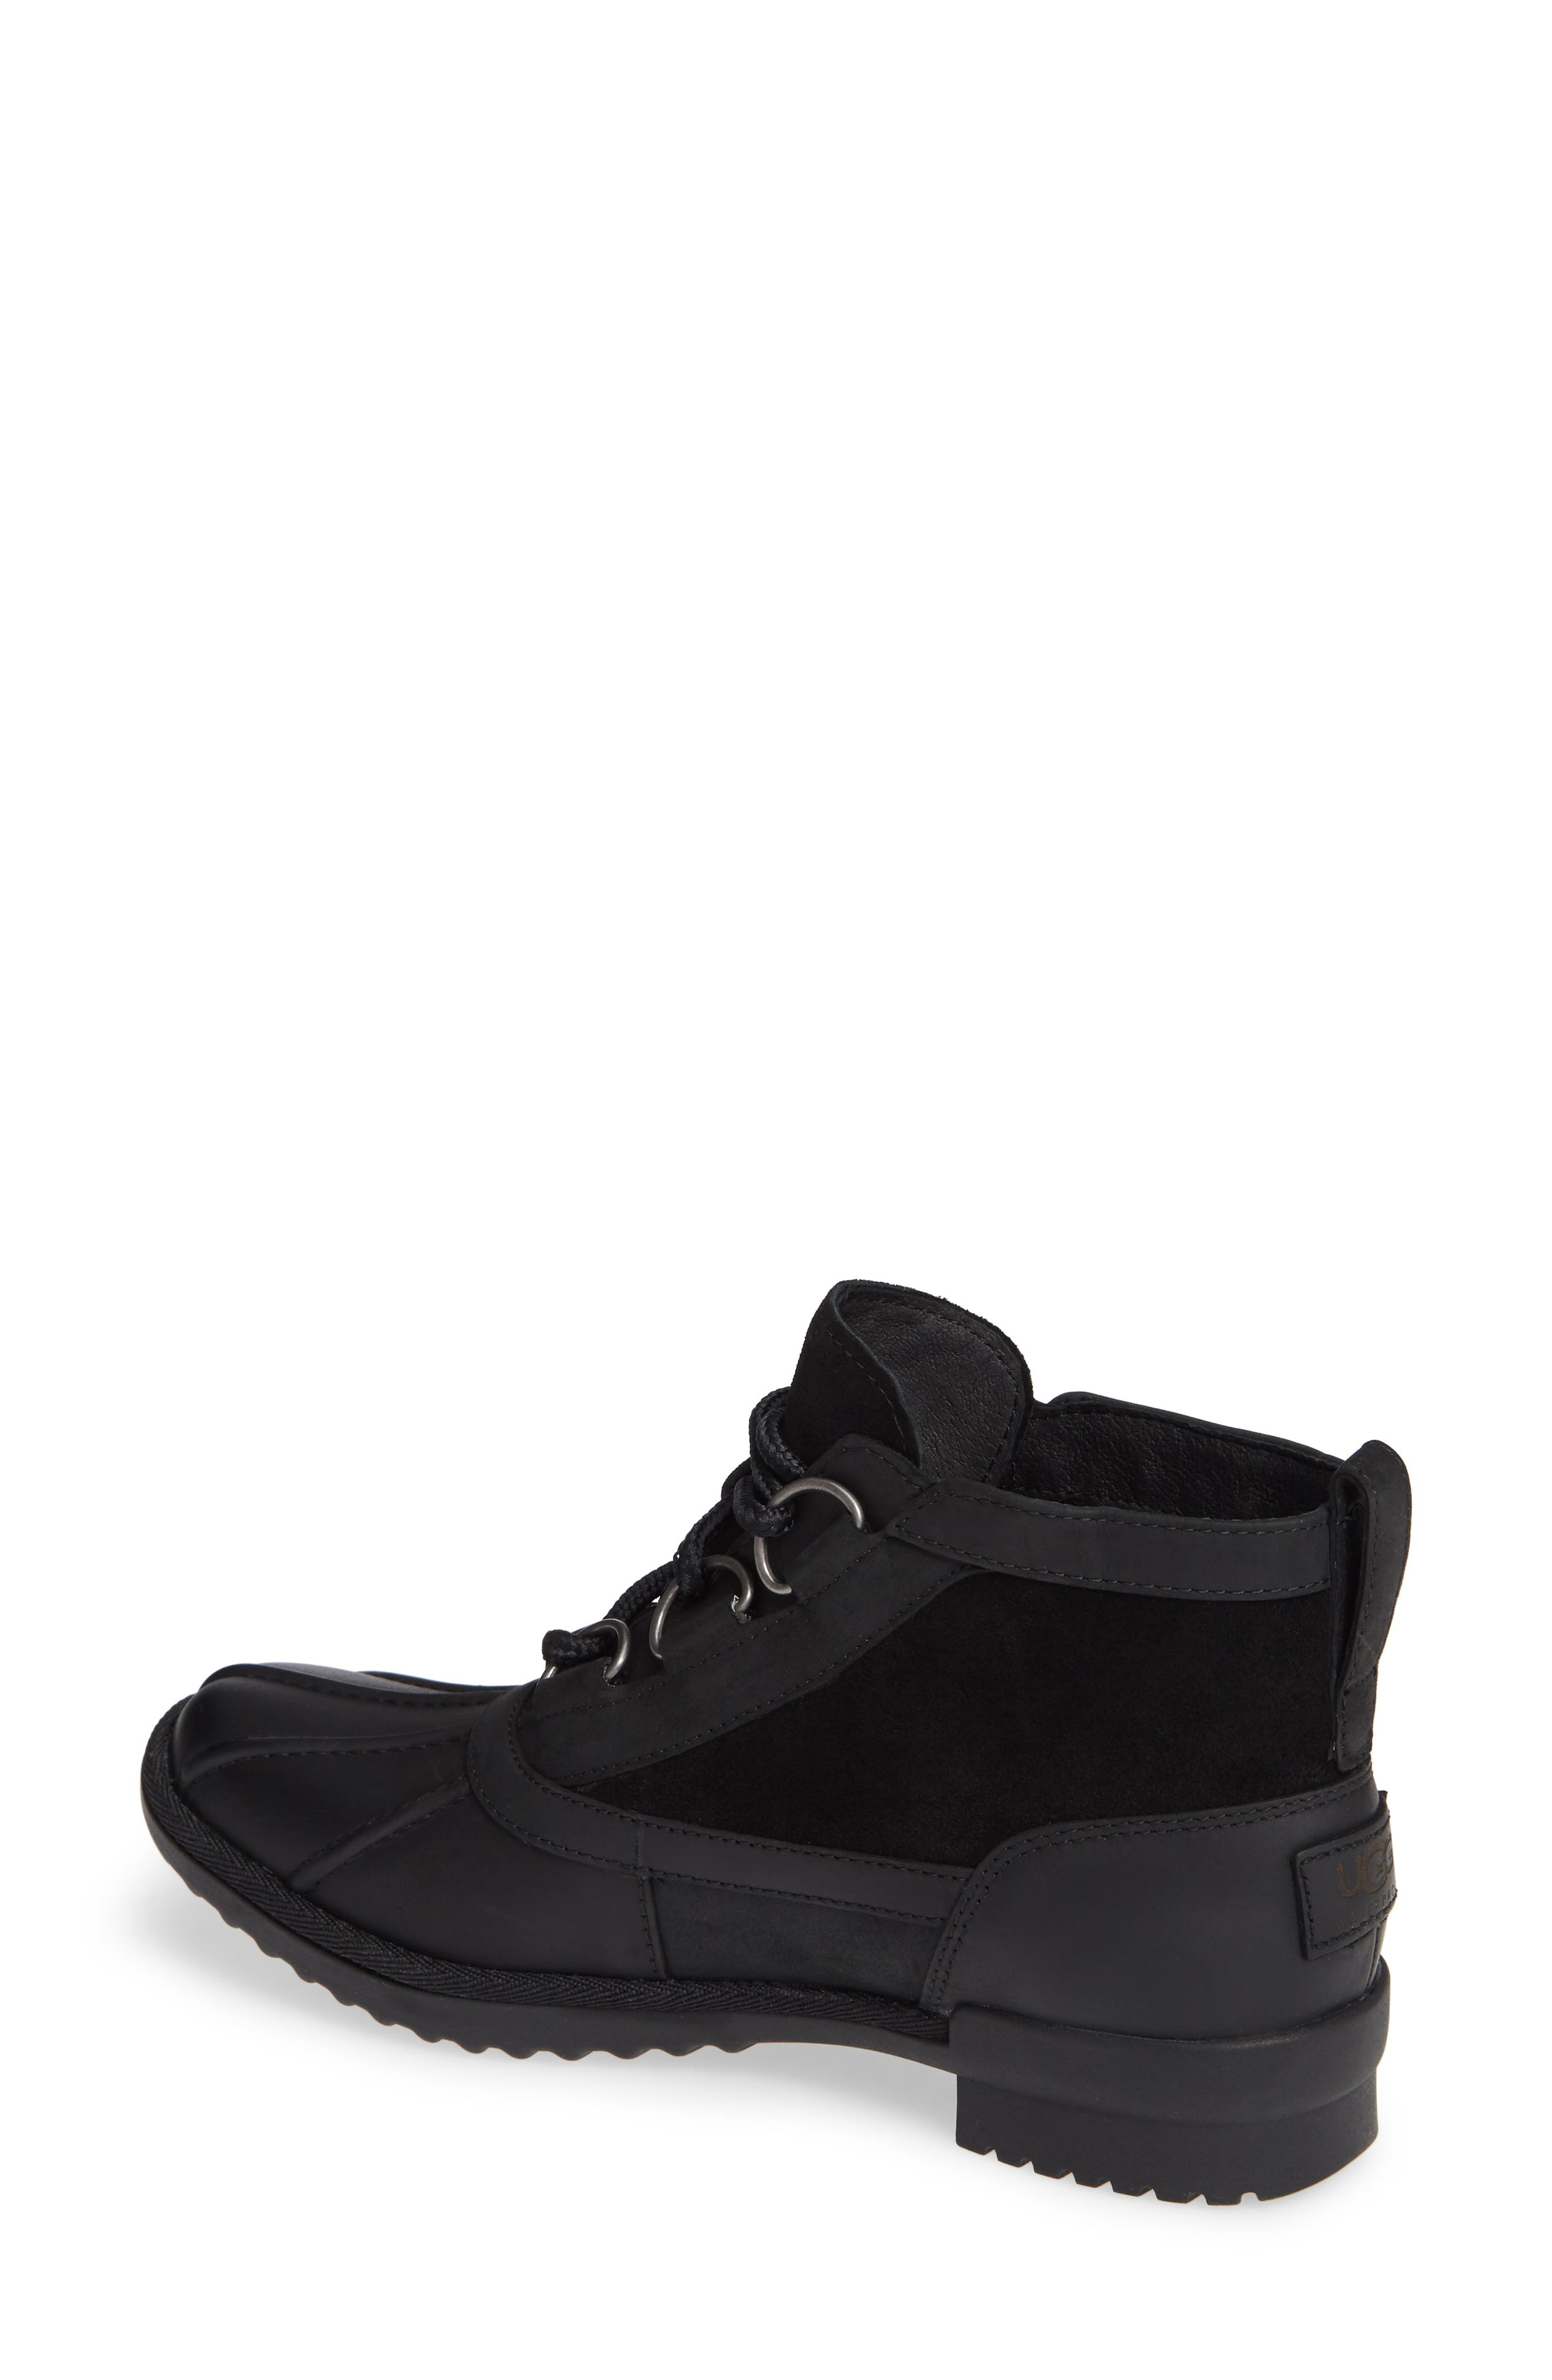 Heather Waterproof Lace-Up Bootie,                             Alternate thumbnail 2, color,                             BLACK LEATHER